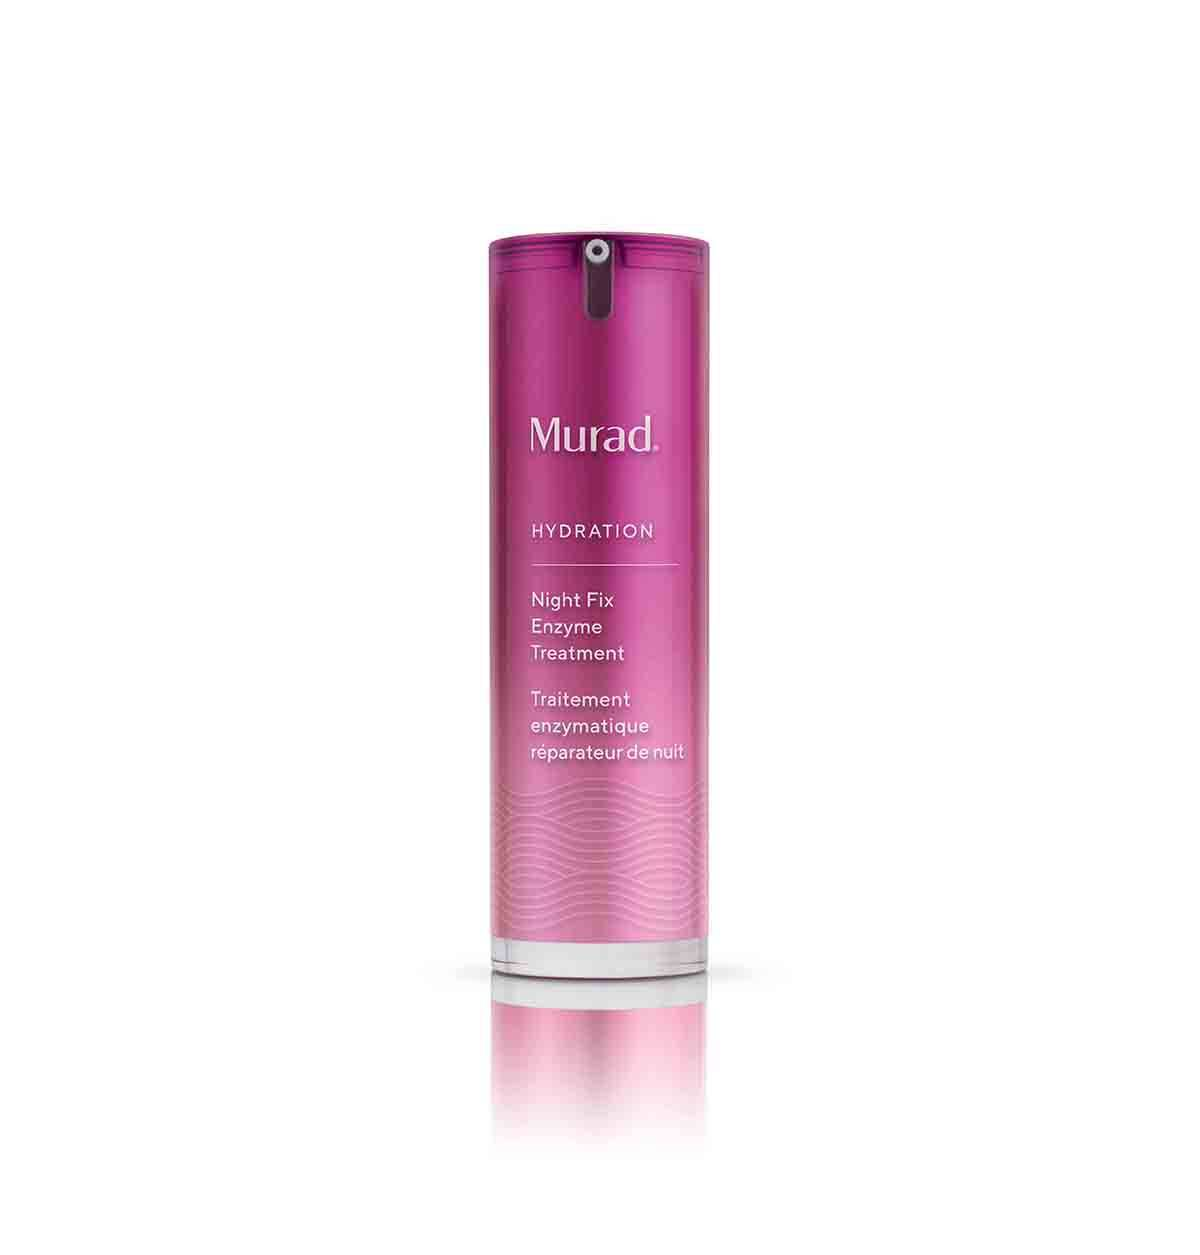 Night Fox Enzyme Treatment, Murad